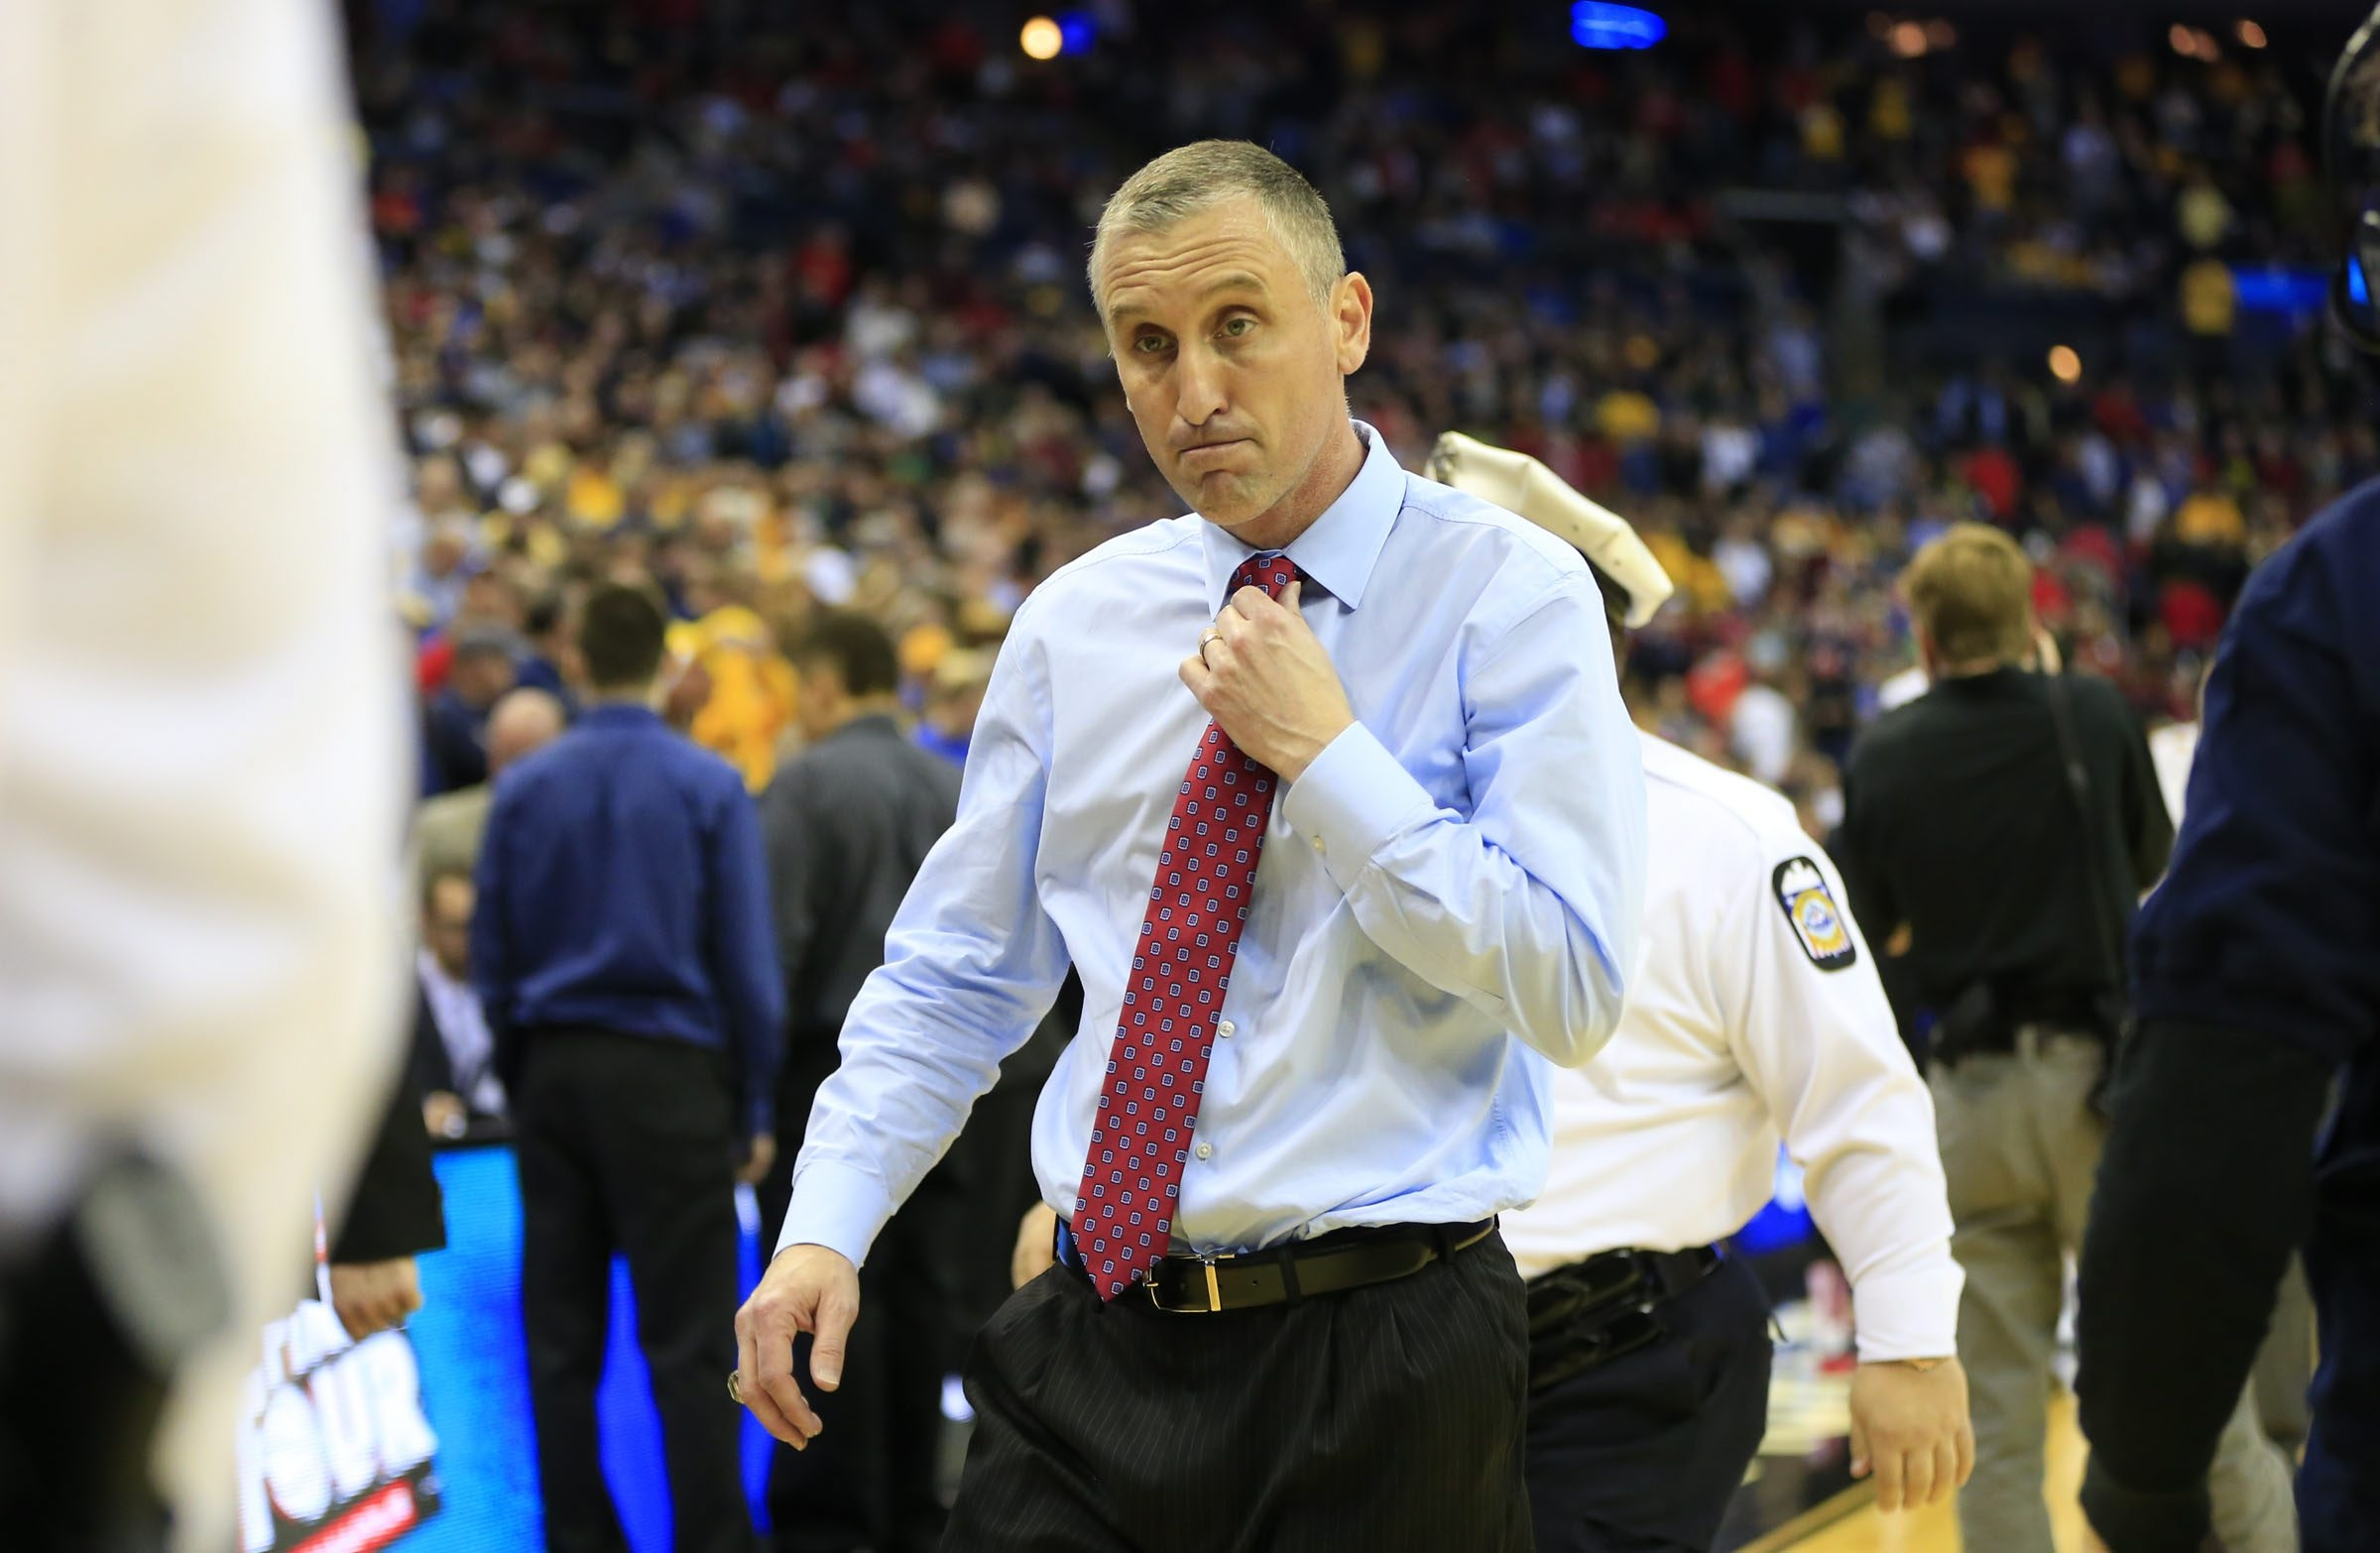 University at Buffalo basketball coach Bobby Hurley walks off the court after his team lost to West Virginia in the NCAA tournament in Columbus, Ohio, on March 20. (Harry Scull Jr./Buffalo News)